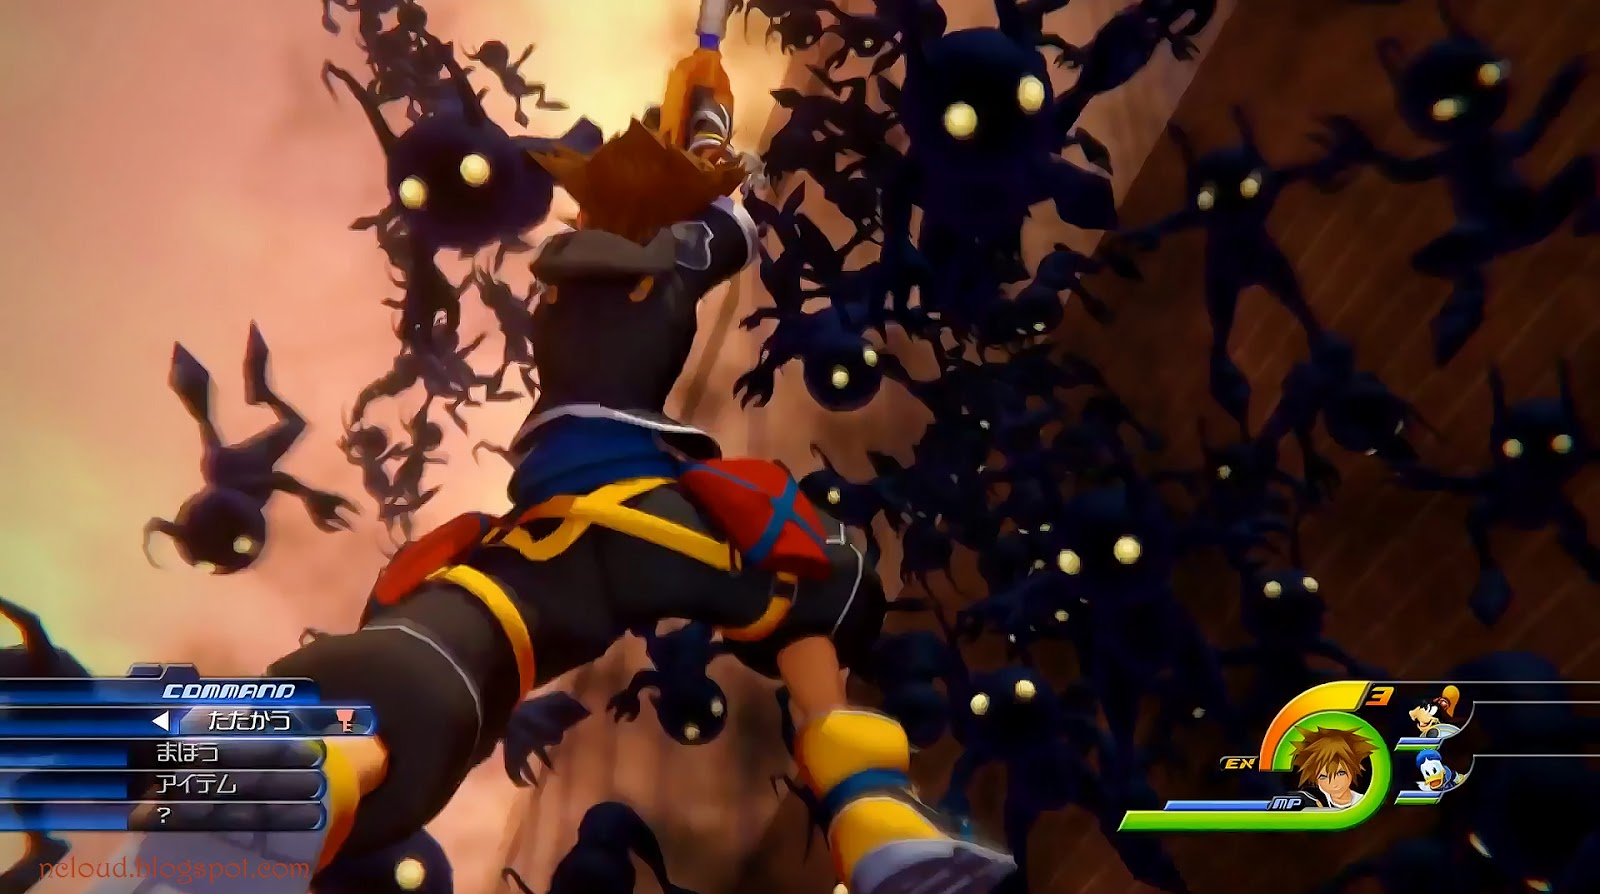 Games Movies Music Anime Kingdom Hearts 3 PS4Xbox One   5 New 1600x894